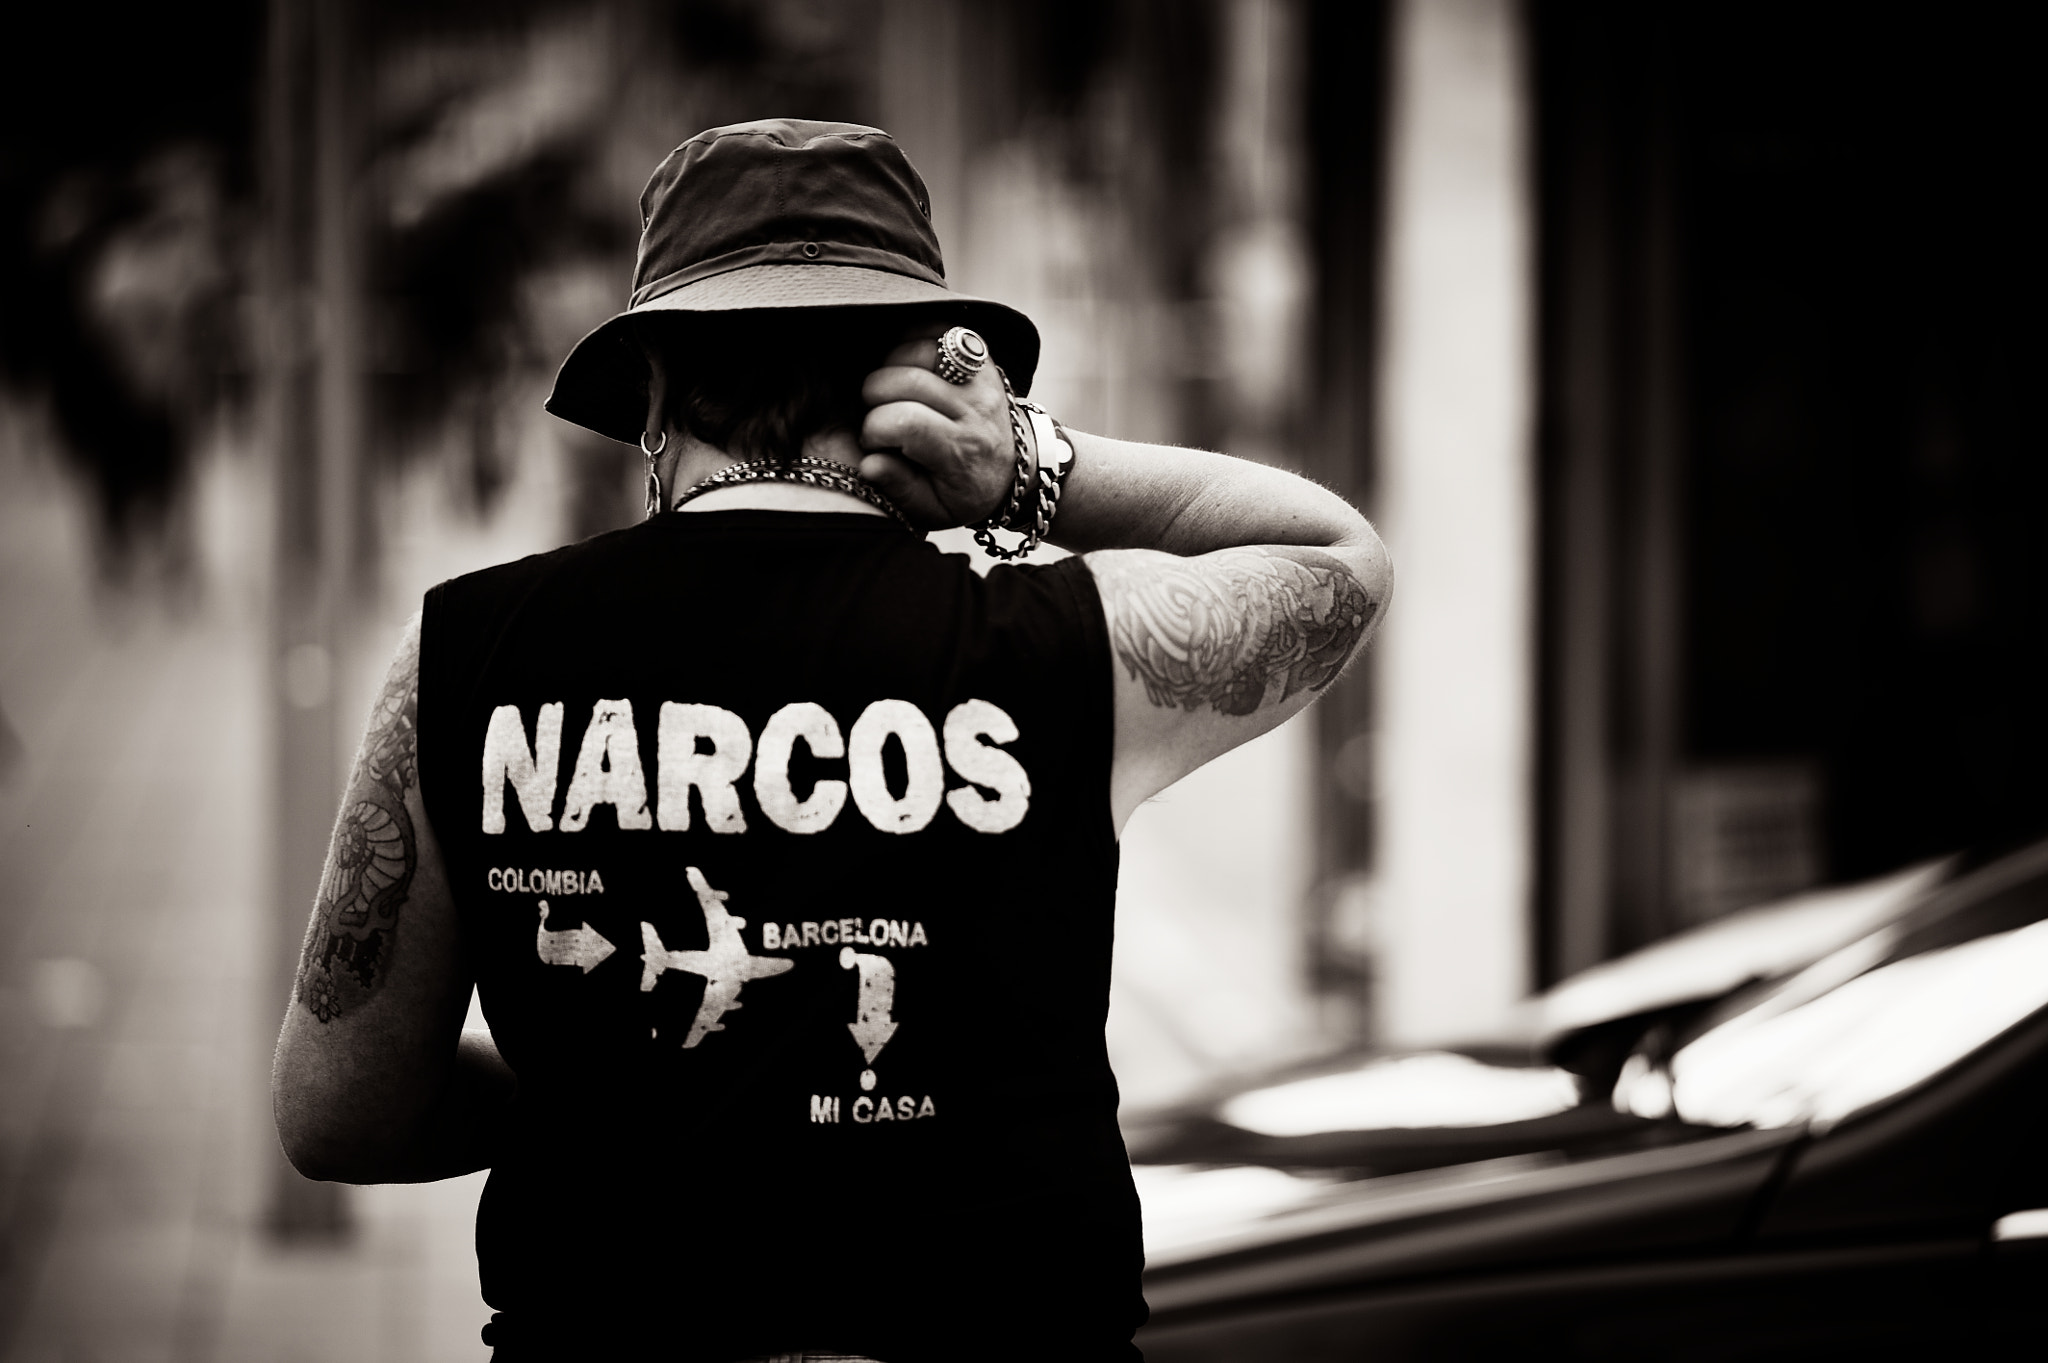 Photograph Narcos by Yovko Lambrev on 500px